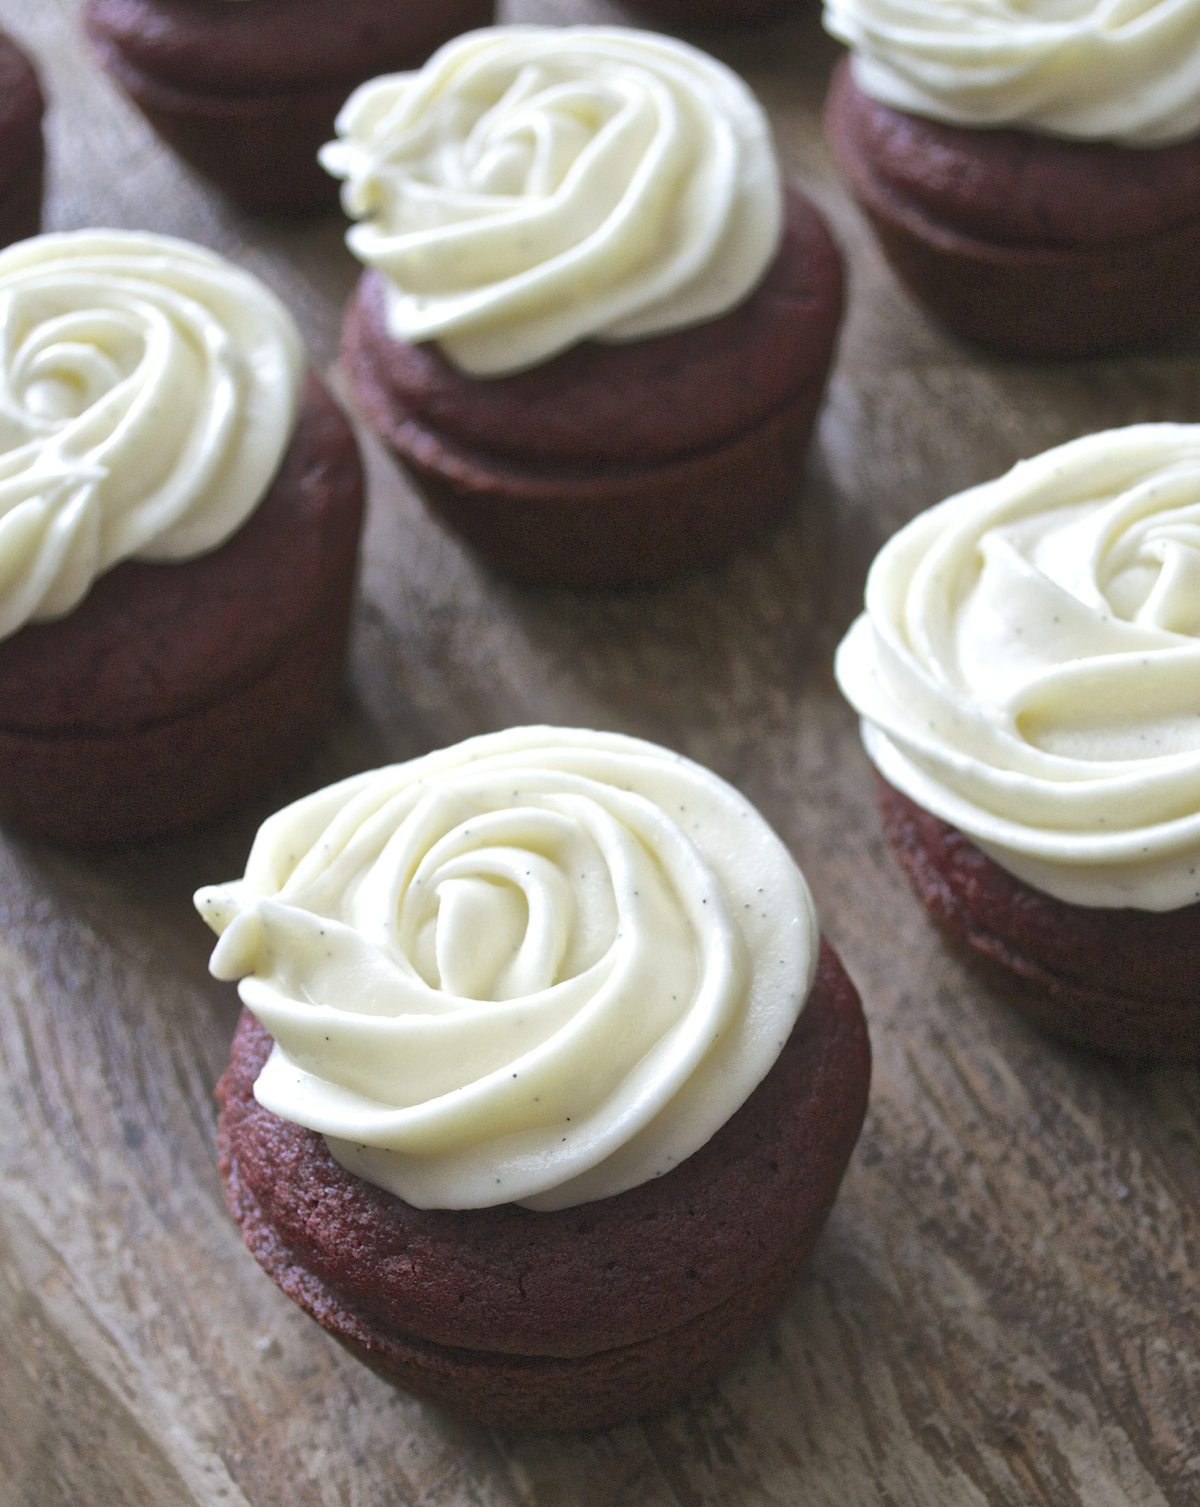 These gluten free Red Velvet Cupcakes are moist and delicious! Topped with Vanilla Cream Cheese Icing they are a dessert that is hard to beat!